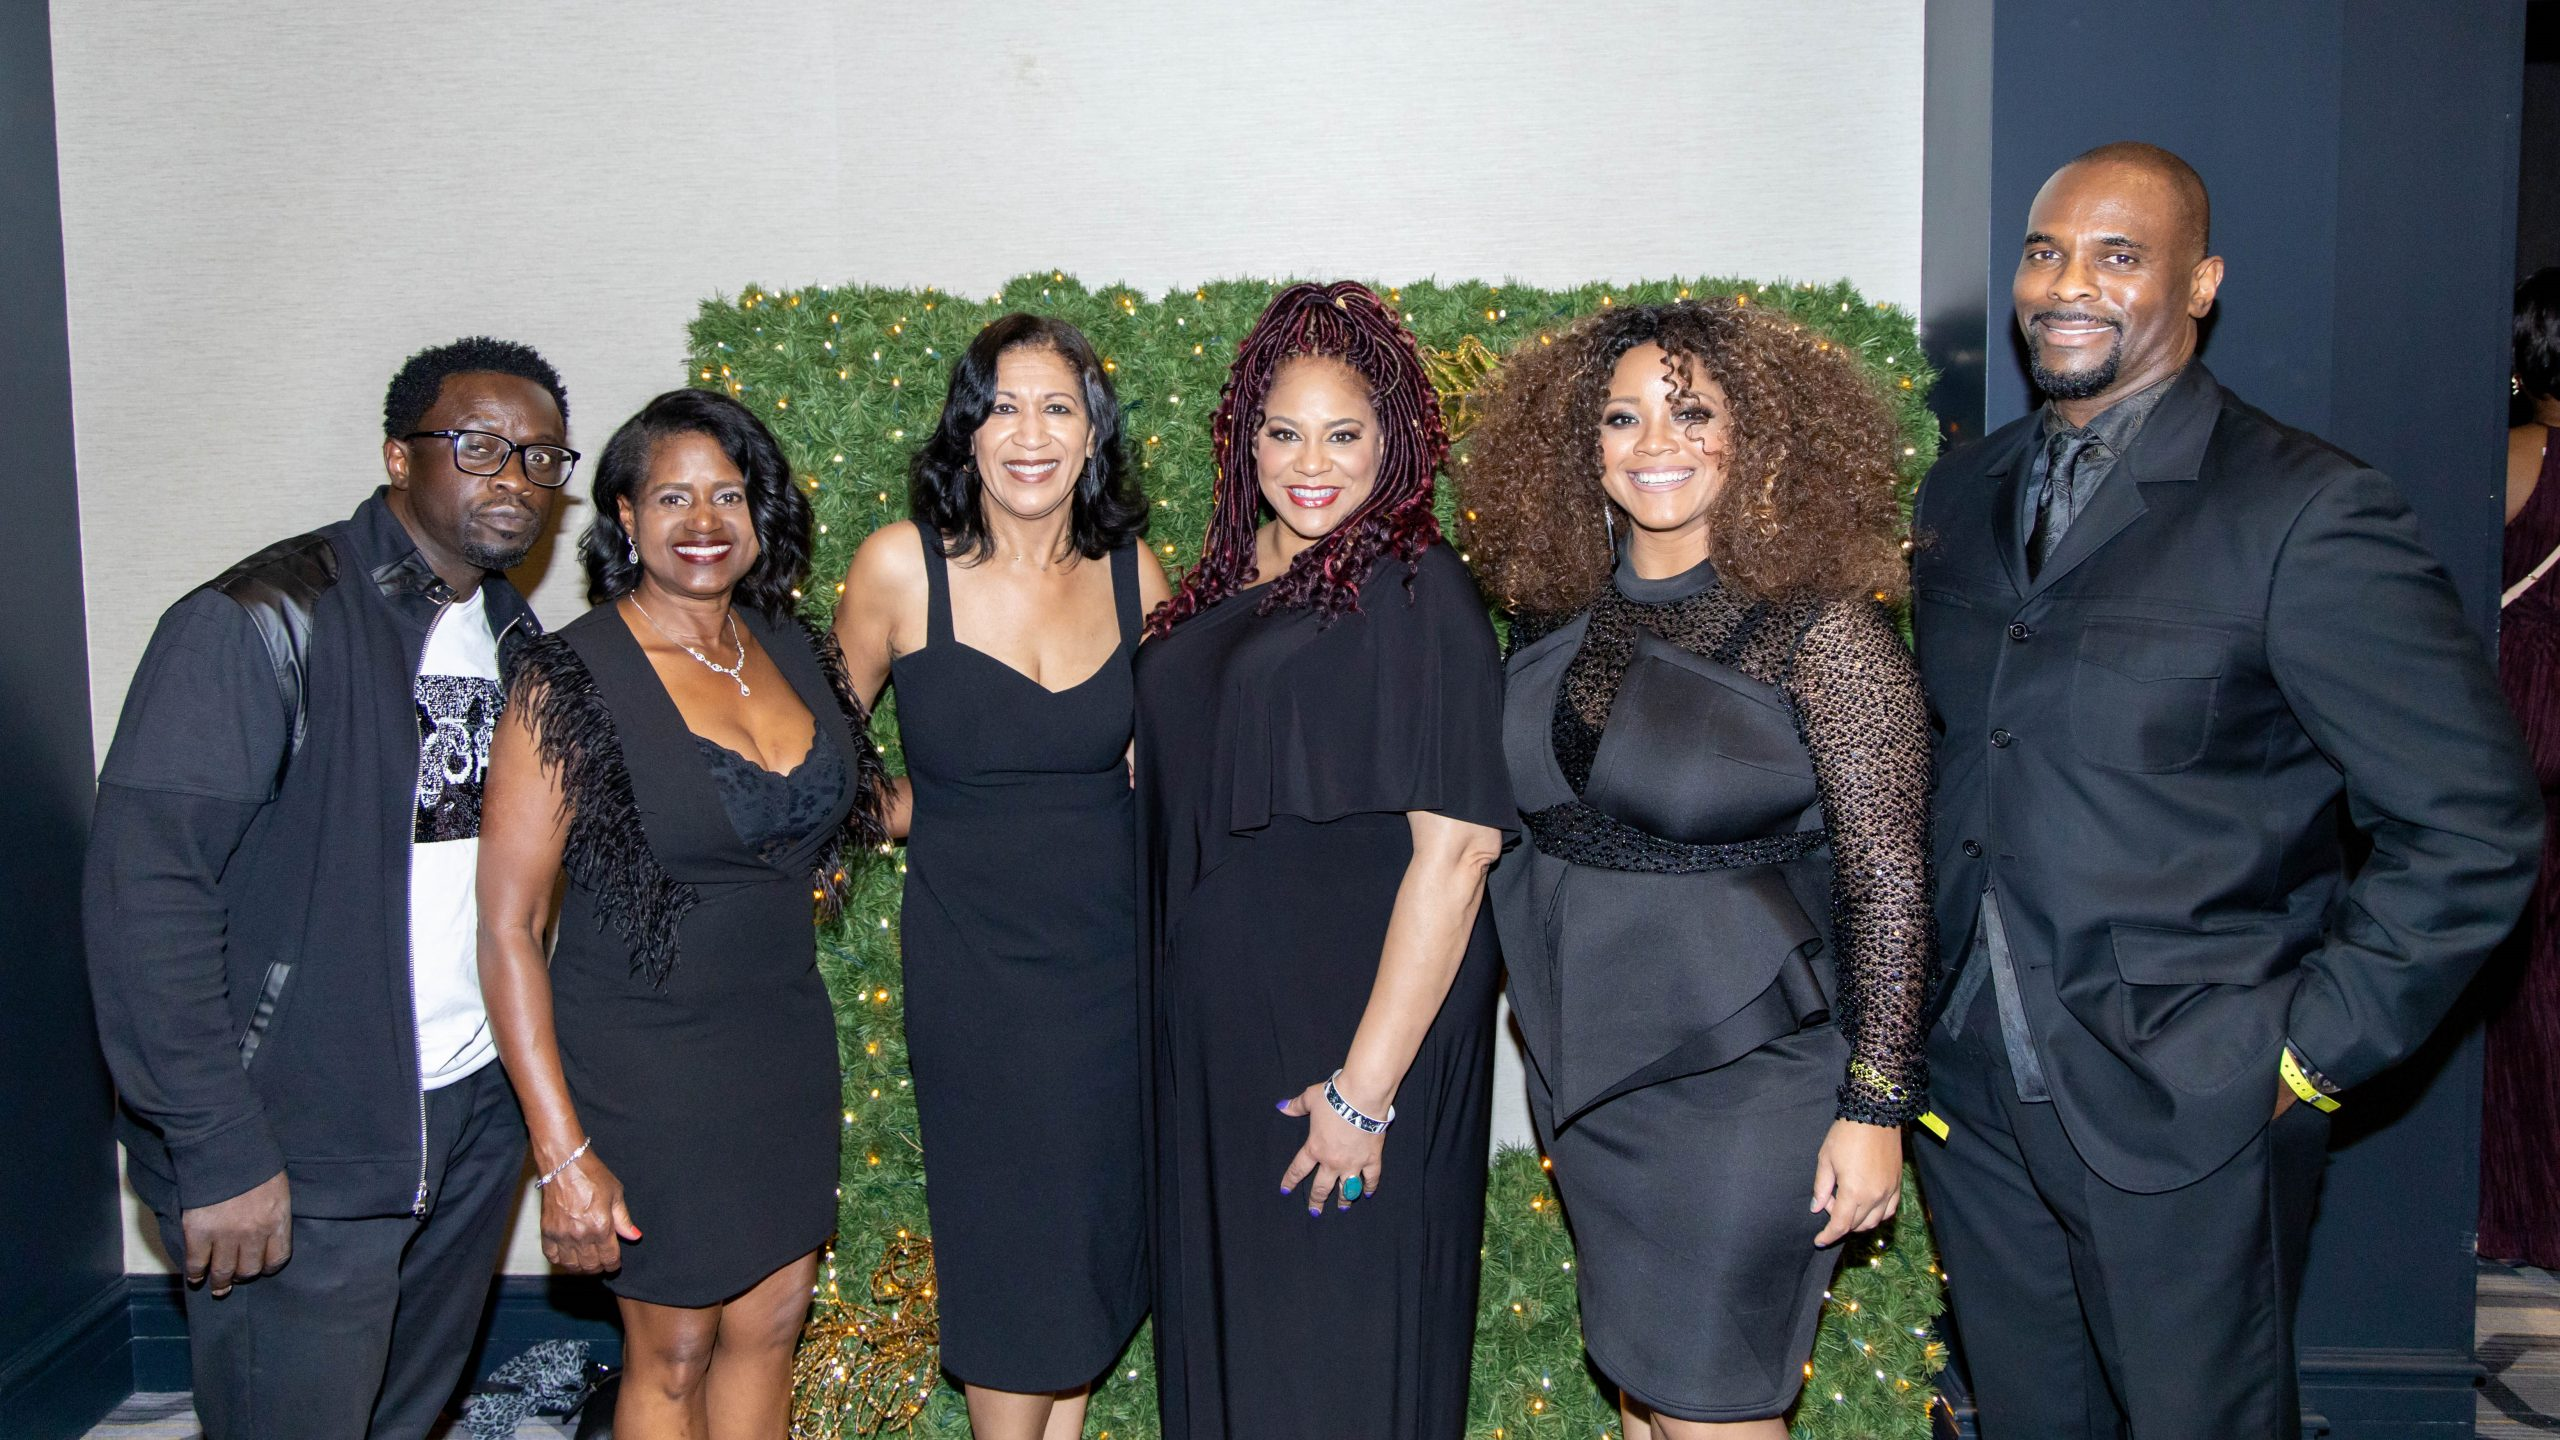 """Kim Coles and T.C. Carson Talk """"Living Single"""", Friends $$, and more!"""